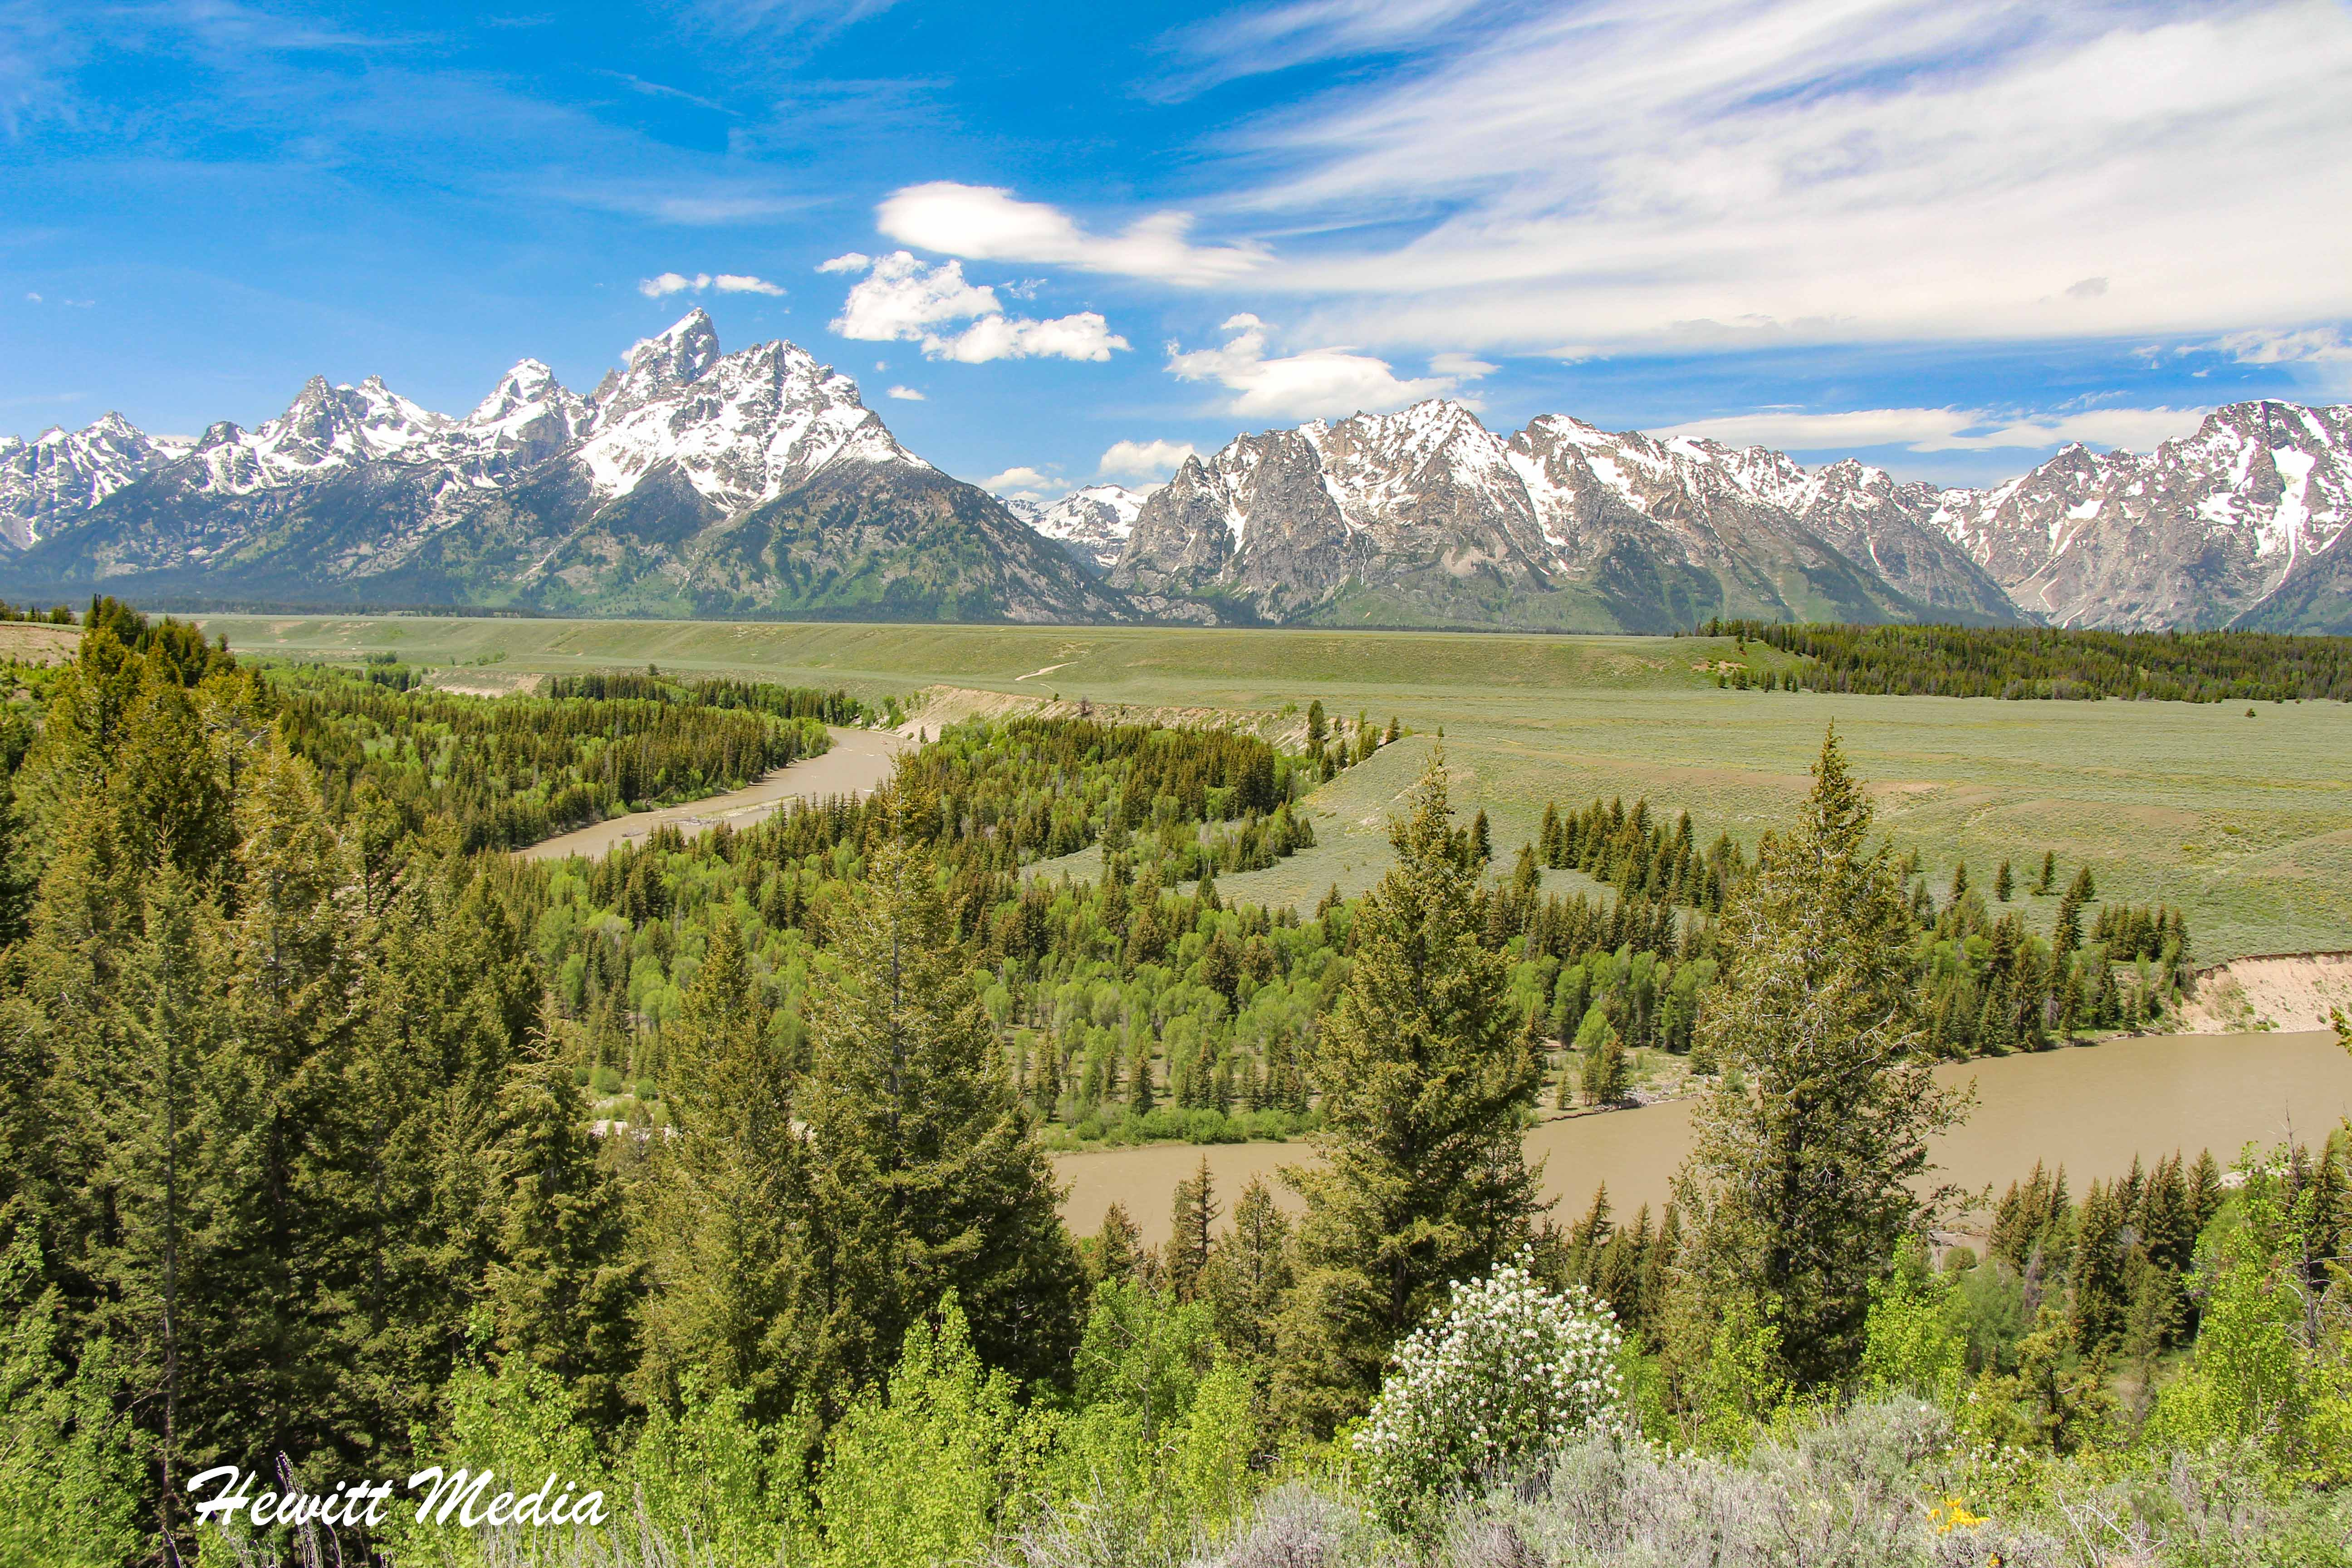 The Snake River and the Grand Teton Range